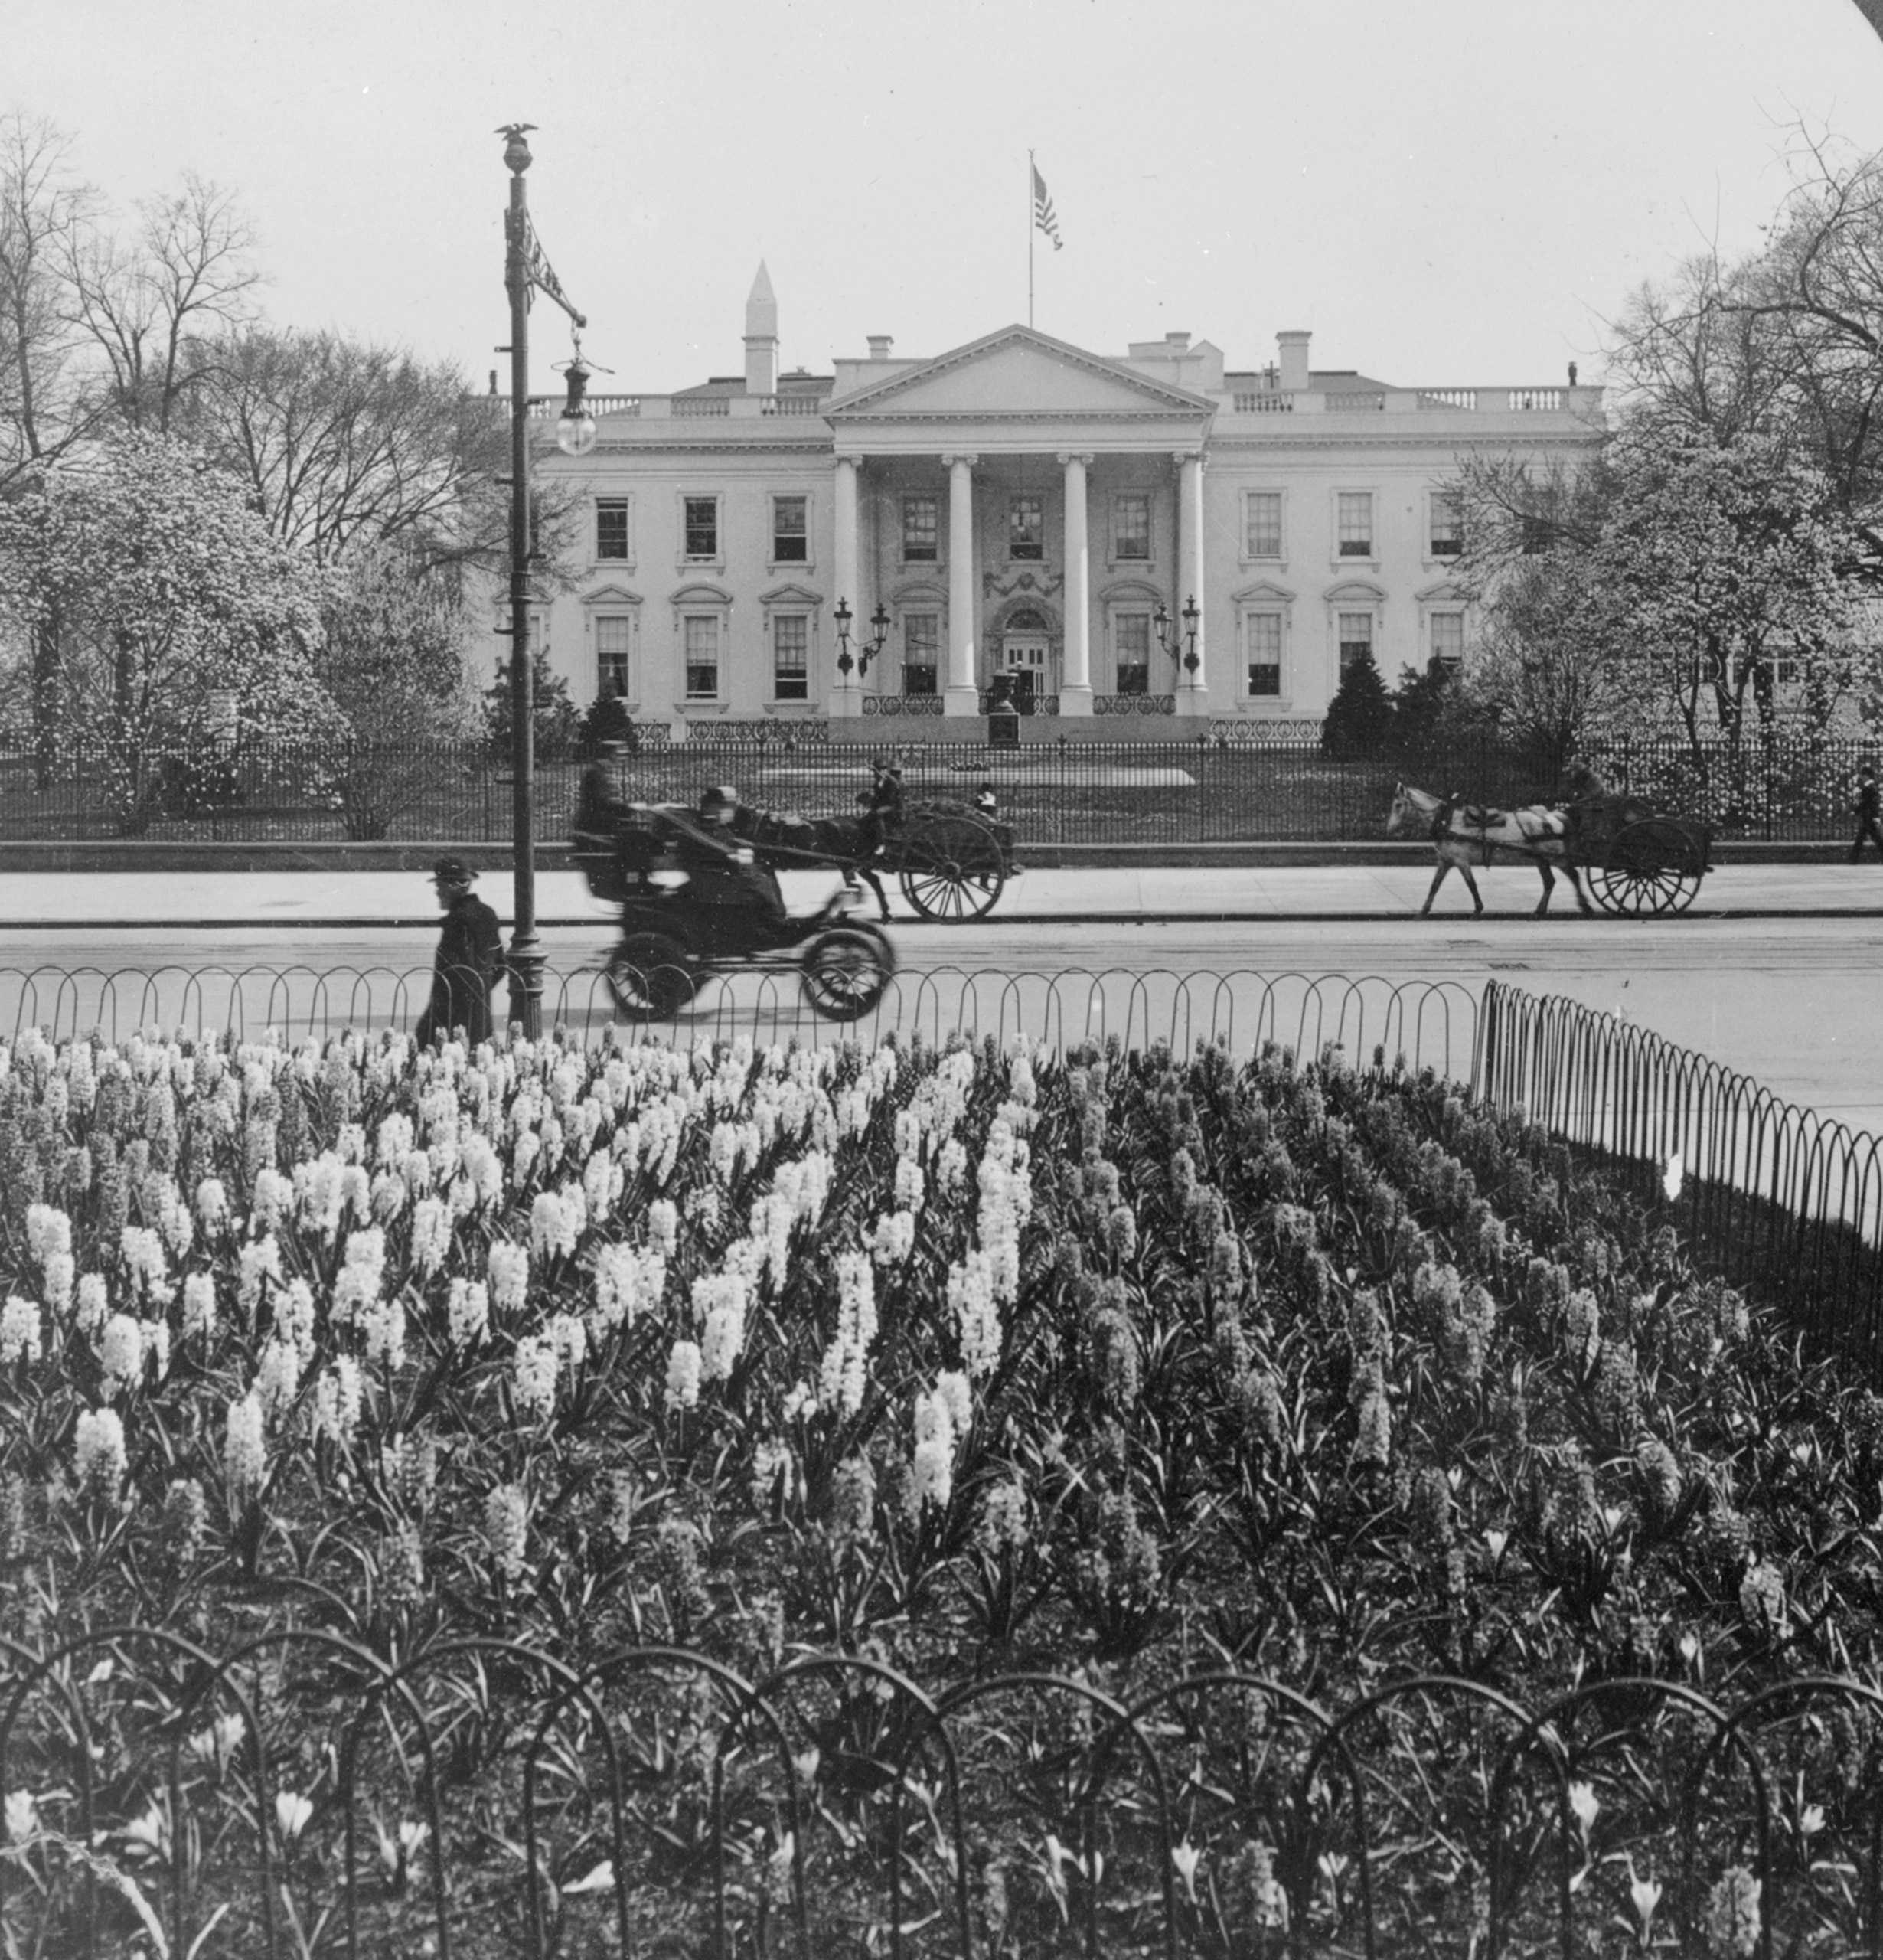 Horse-drawn and motorized vehicles join pedestrians in front of 1600 Pennsylvania Avenue. Hyacinths fill a bed in Lafayette Park and magnolias bloom on the North Lawn across the street. During the Taft administration.